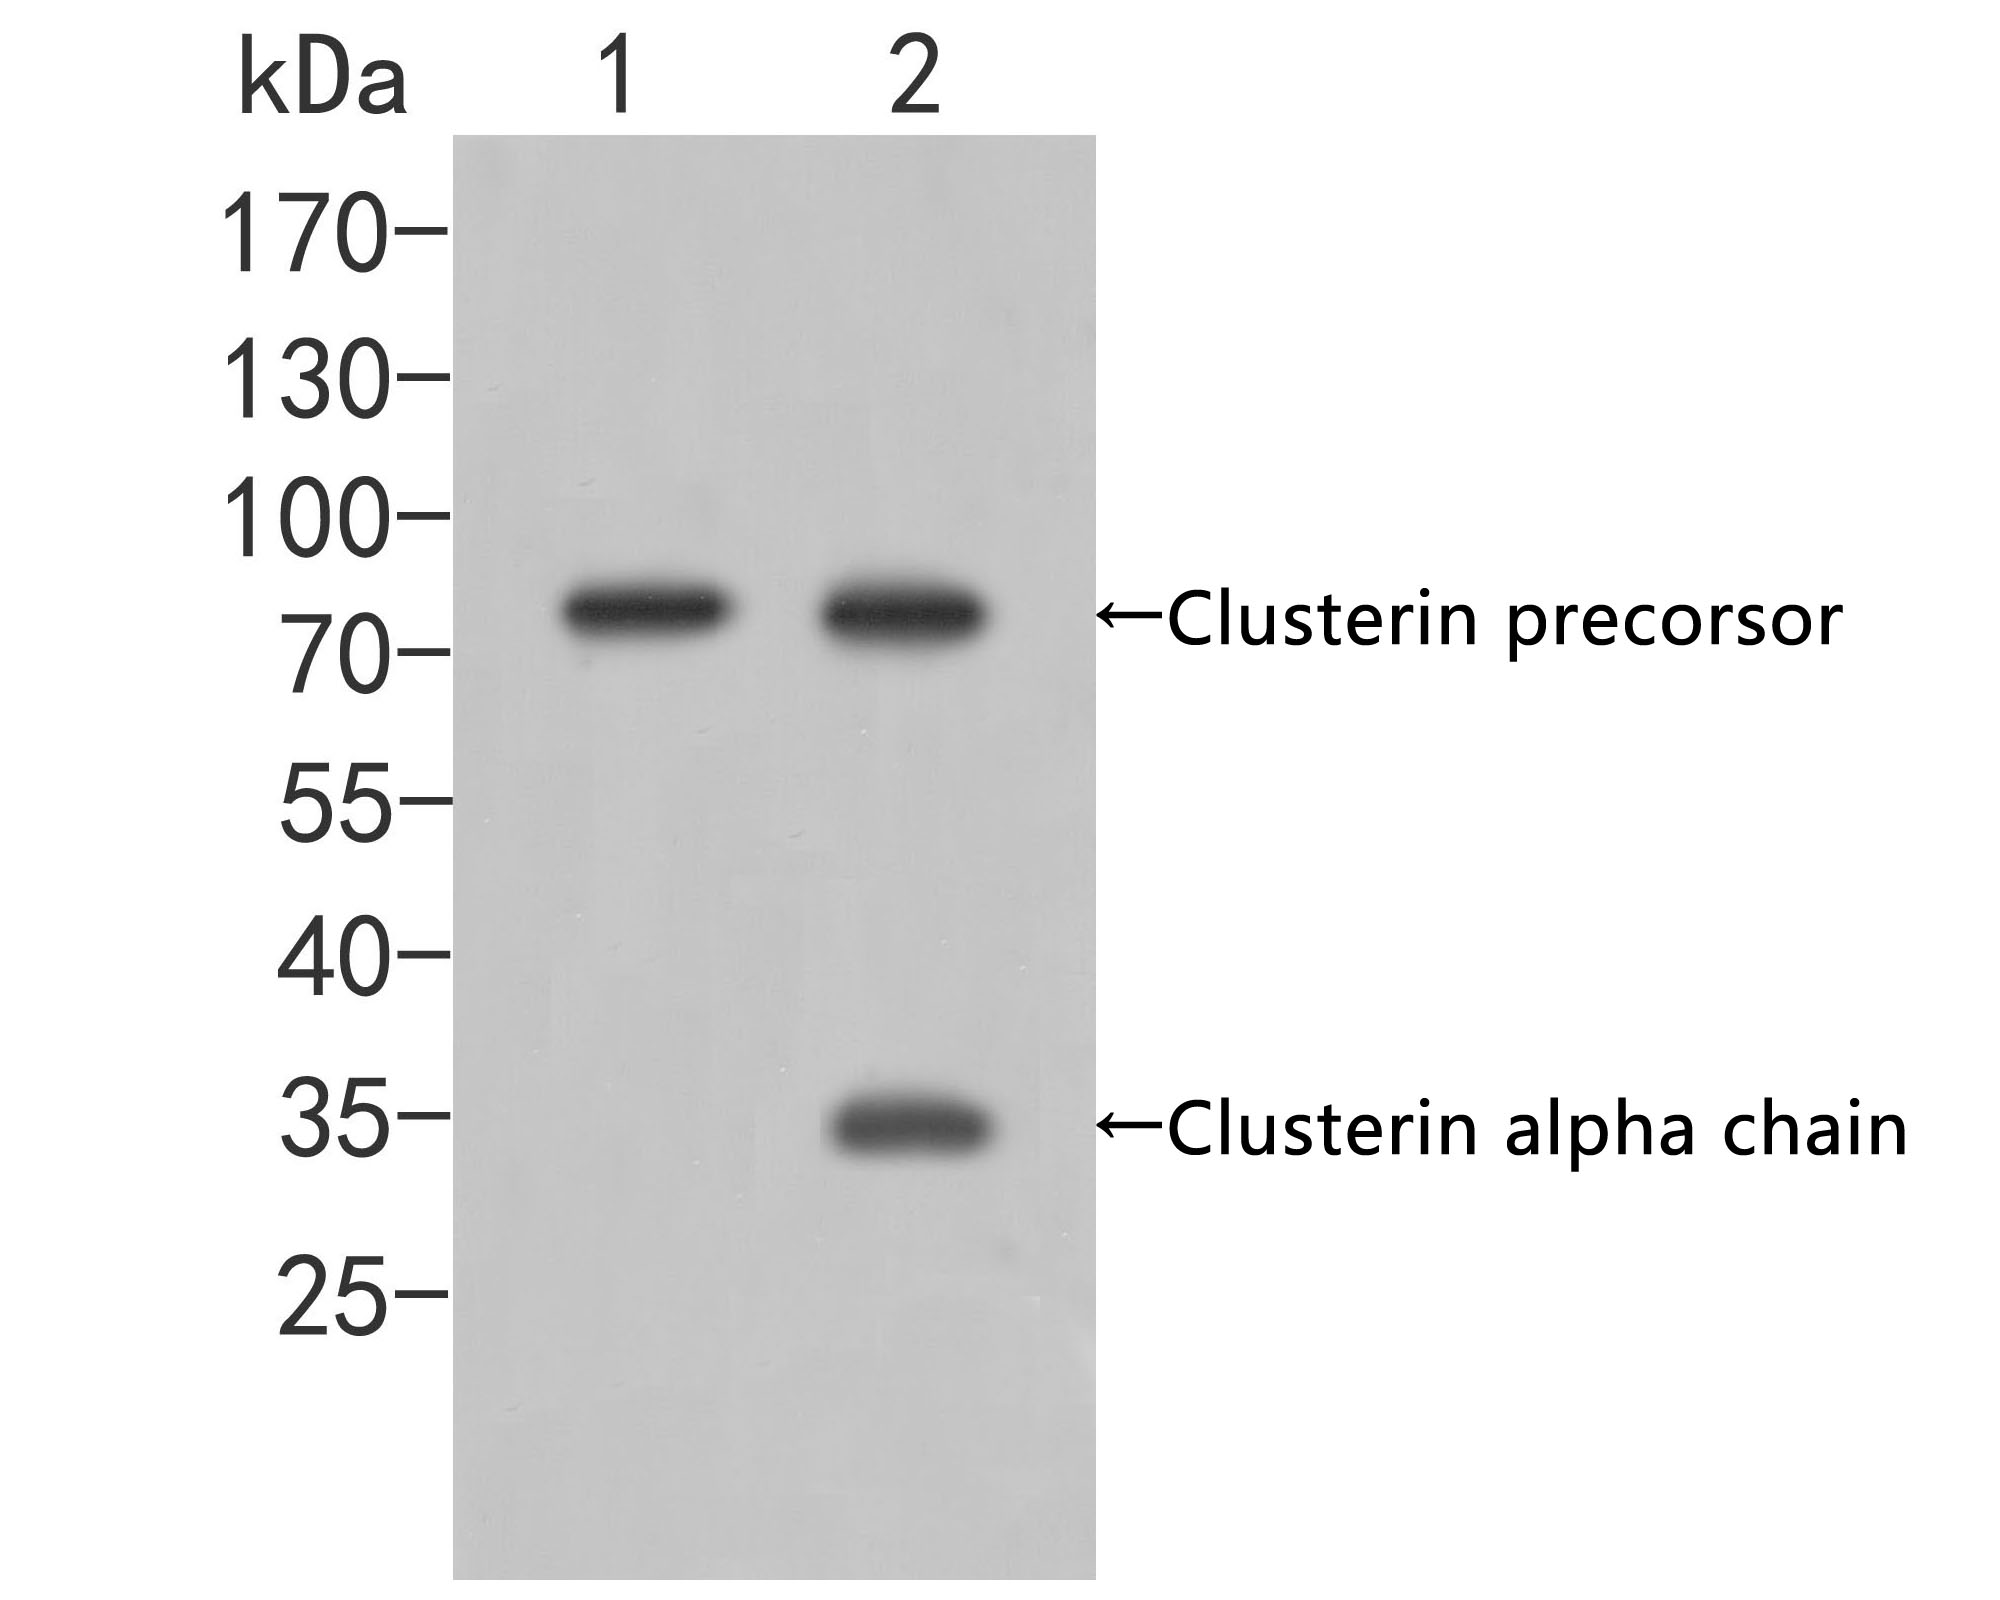 Western blot analysis of Clusterin on different lysates. Proteins were transferred to a PVDF membrane and blocked with 5% BSA in PBS for 1 hour at room temperature. The primary antibody (ER2001-58, 1/500) was used in 5% BSA at room temperature for 2 hours. Goat Anti-Rabbit IgG - HRP Secondary Antibody (HA1001) at 1:5,000 dilution was used for 1 hour at room temperature.<br /> Positive control: <br /> Lane 1: Hela cell lysate<br /> Lane 2: SKBR-3 cell lysate